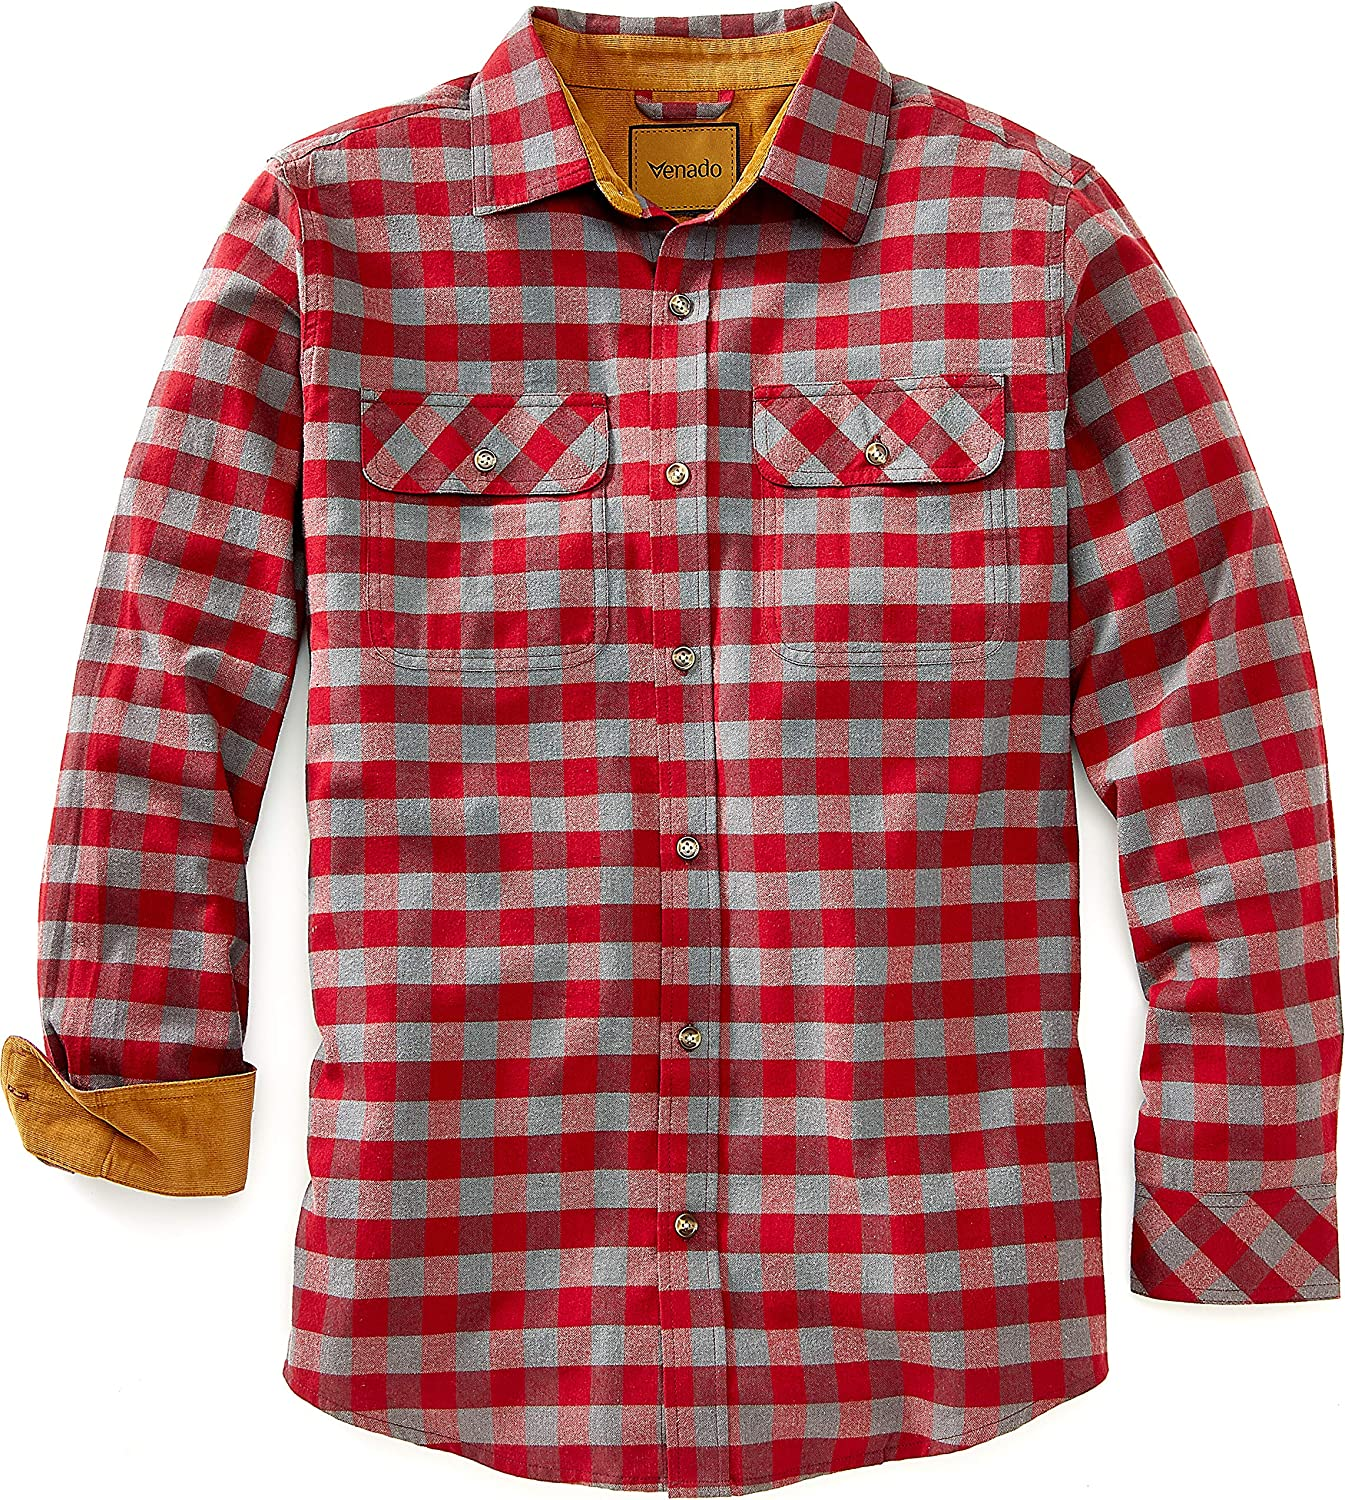 Venado Flannel Shirt for Men - Mens Flannel Plaid Shirt with Full Reach Gusset